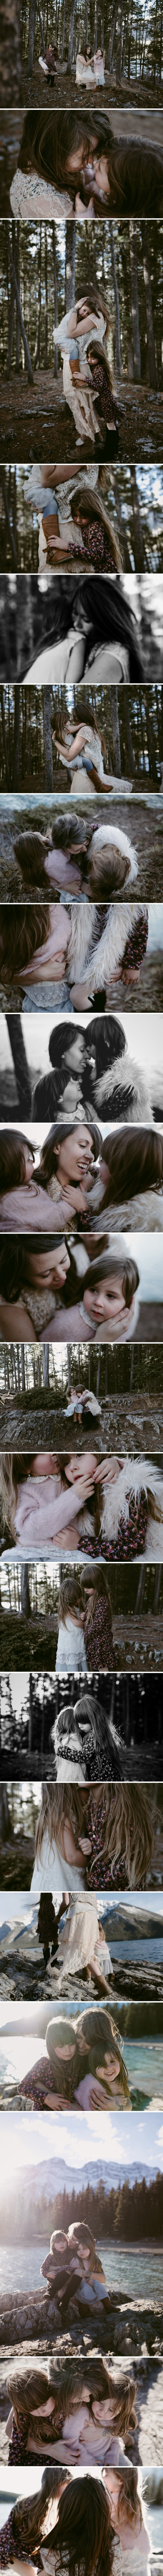 Canadian Rockies Family Photography   ©The Paper Deer Photography   thepaperdeer.ca